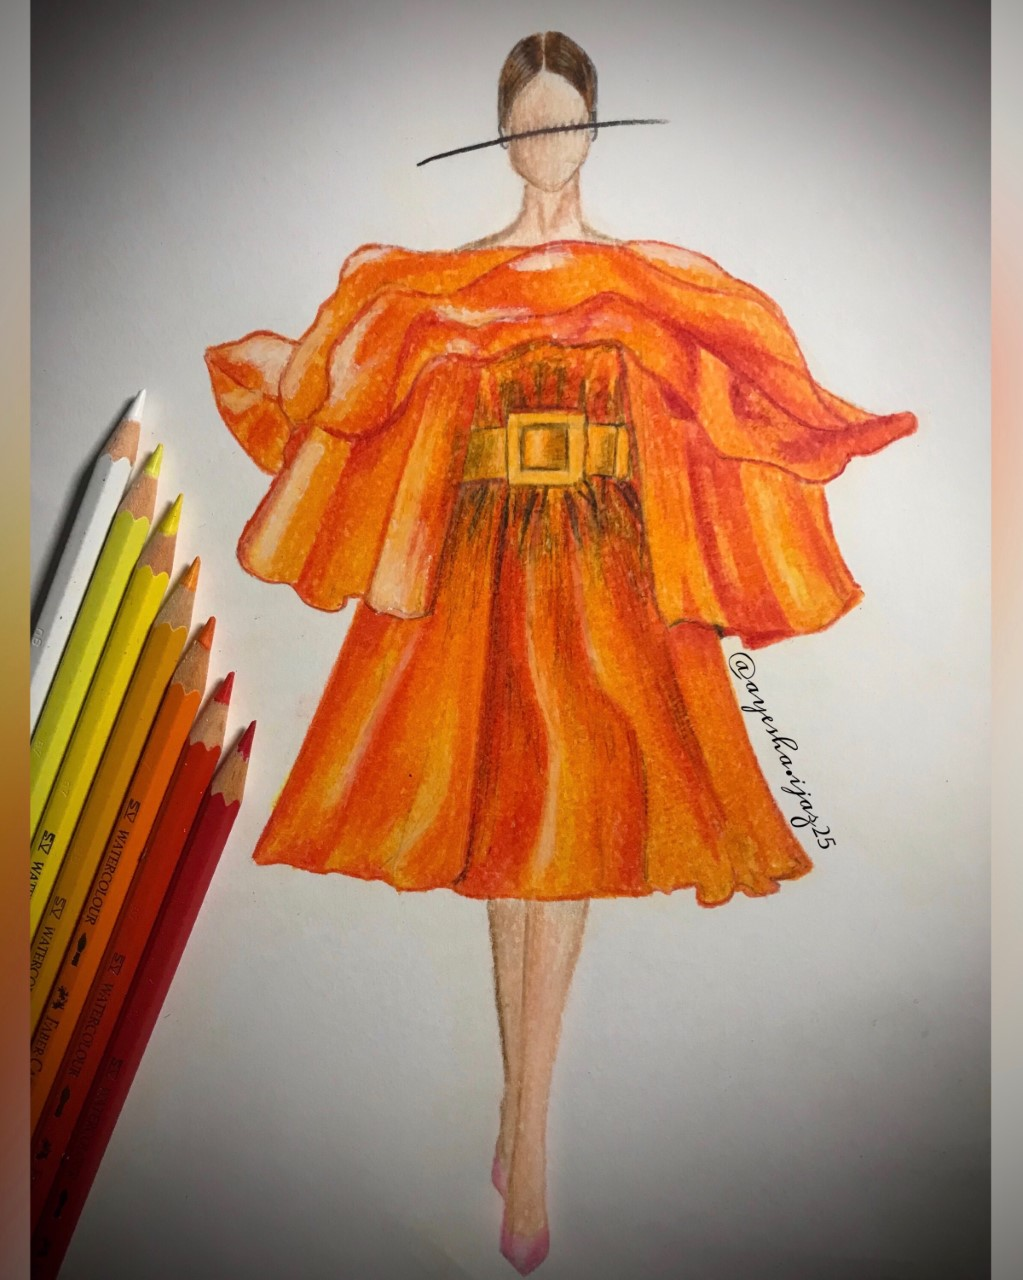 An illustration of a model wearing a deep orange dress with a copper belt around the waist. The illustration has a line through the face and the pencil colours used - white, yellow, orange and red - are placed on the left side of the illustration.